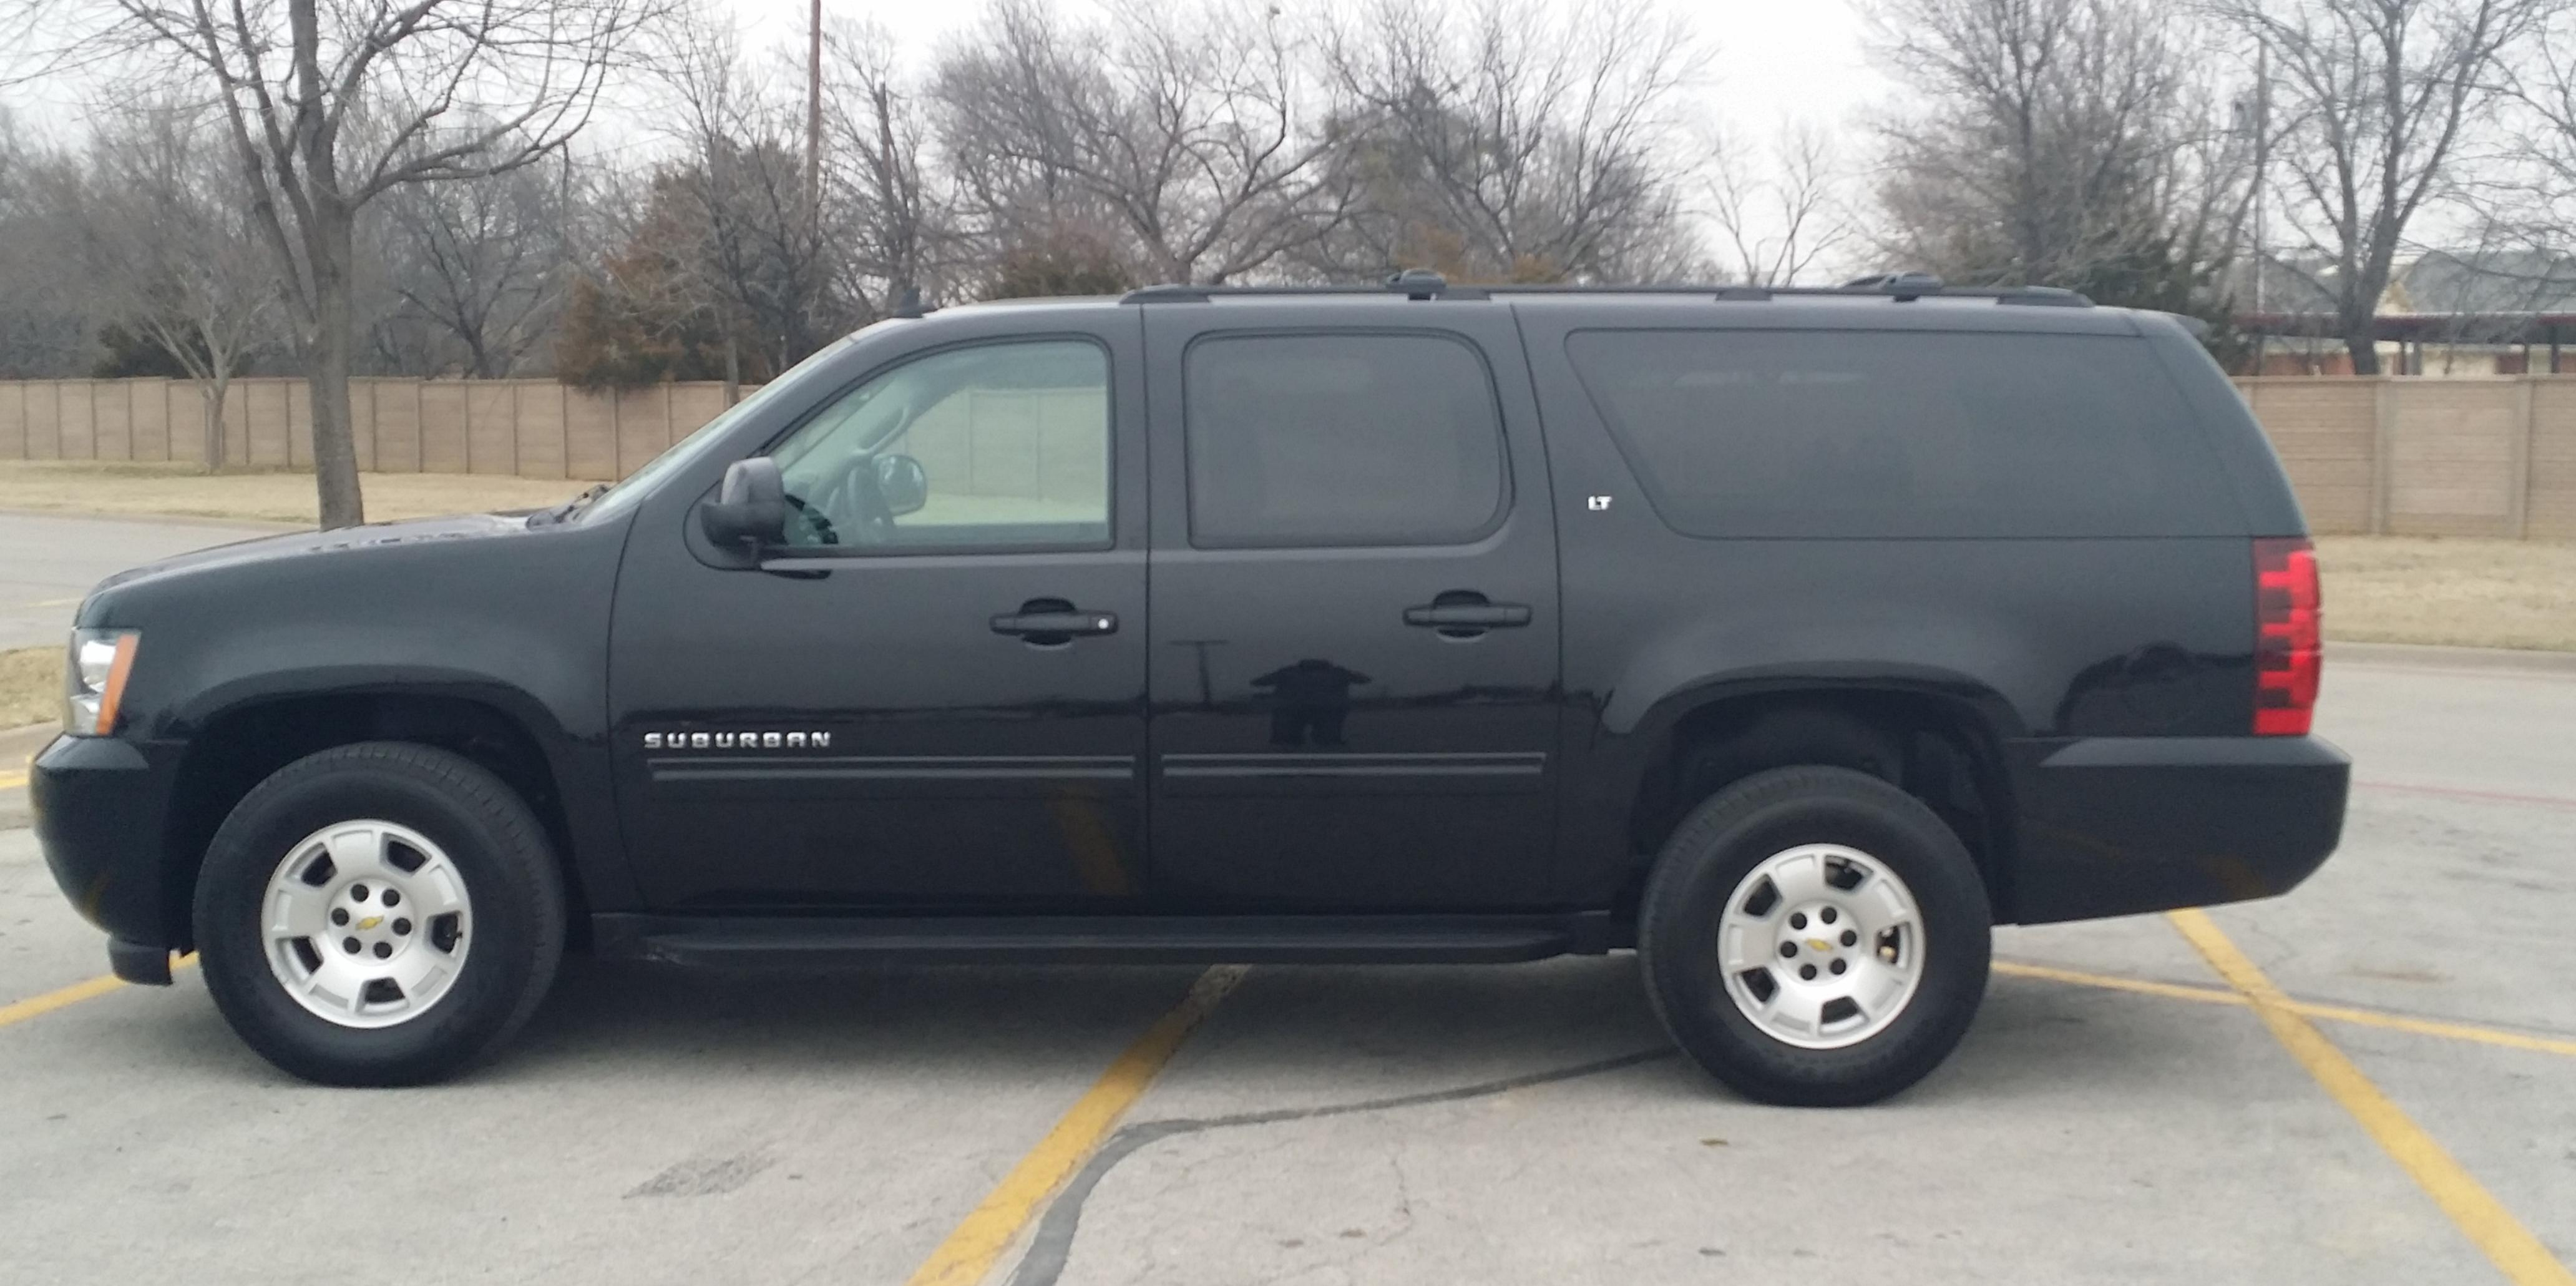 hakimin 2010 chevrolet suburban 1500 specs photos modification info at cardomain. Black Bedroom Furniture Sets. Home Design Ideas